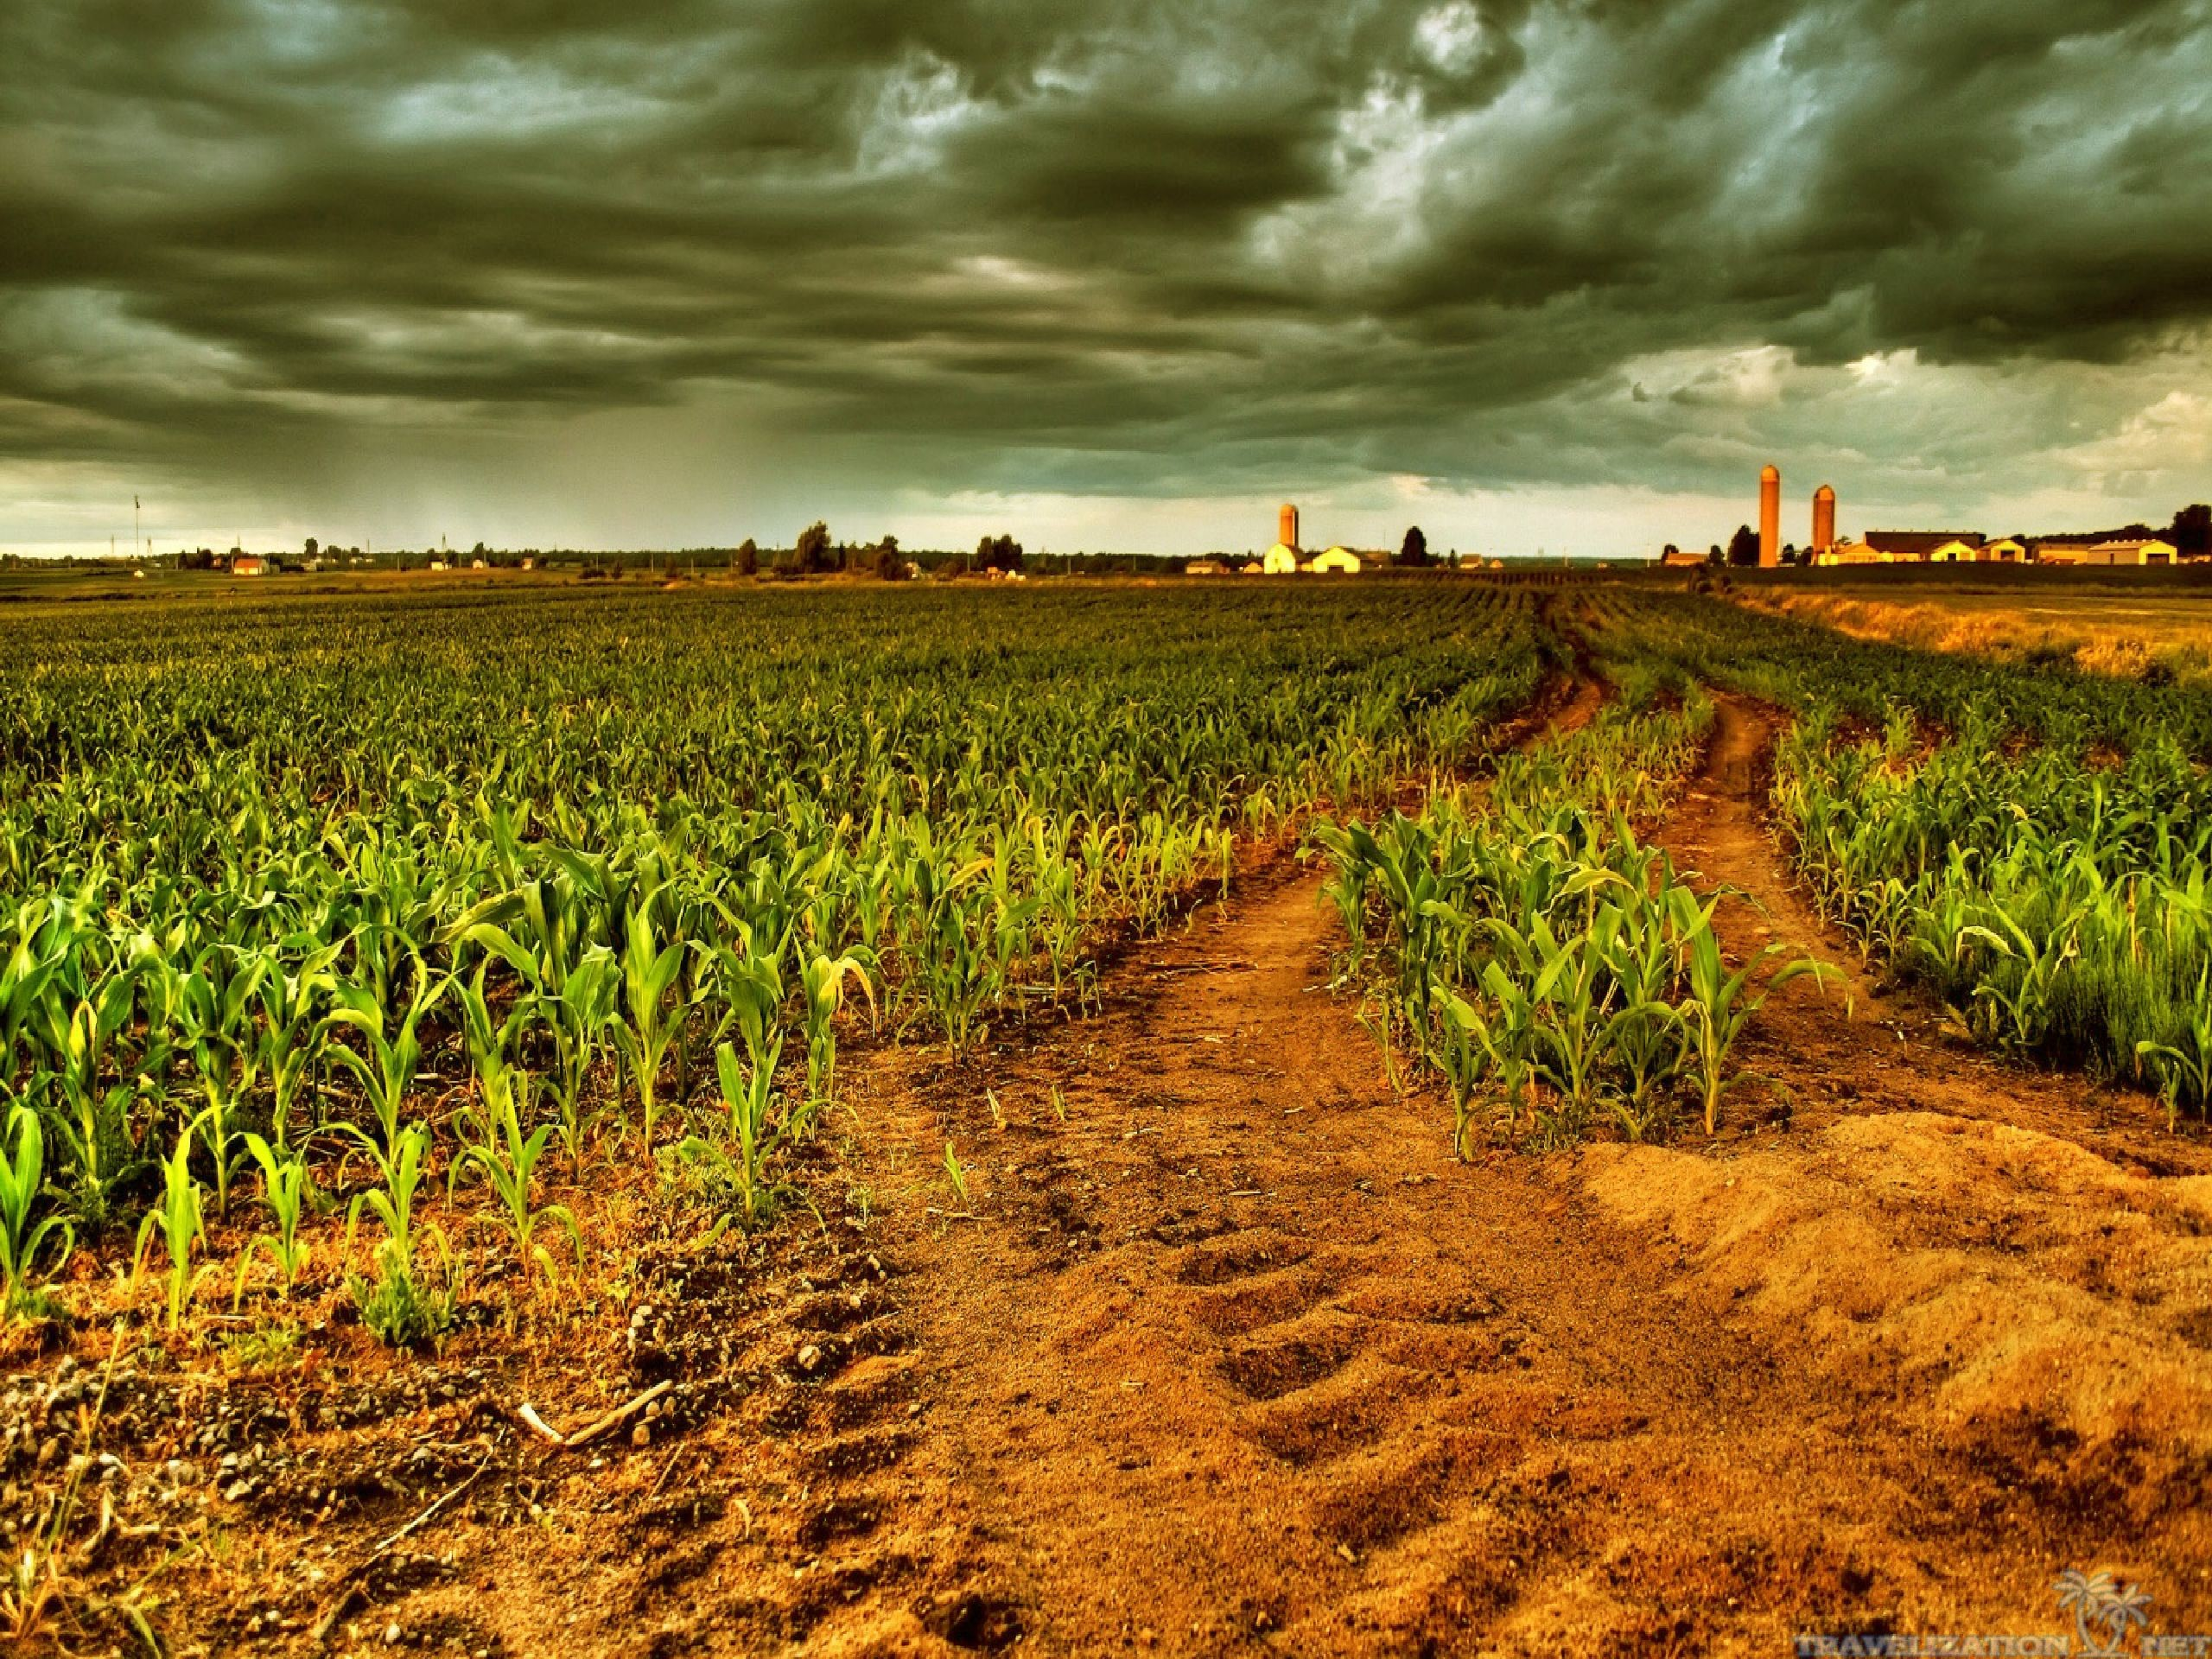 rural scene wallpapers  u00b7 u2460 wallpapertag